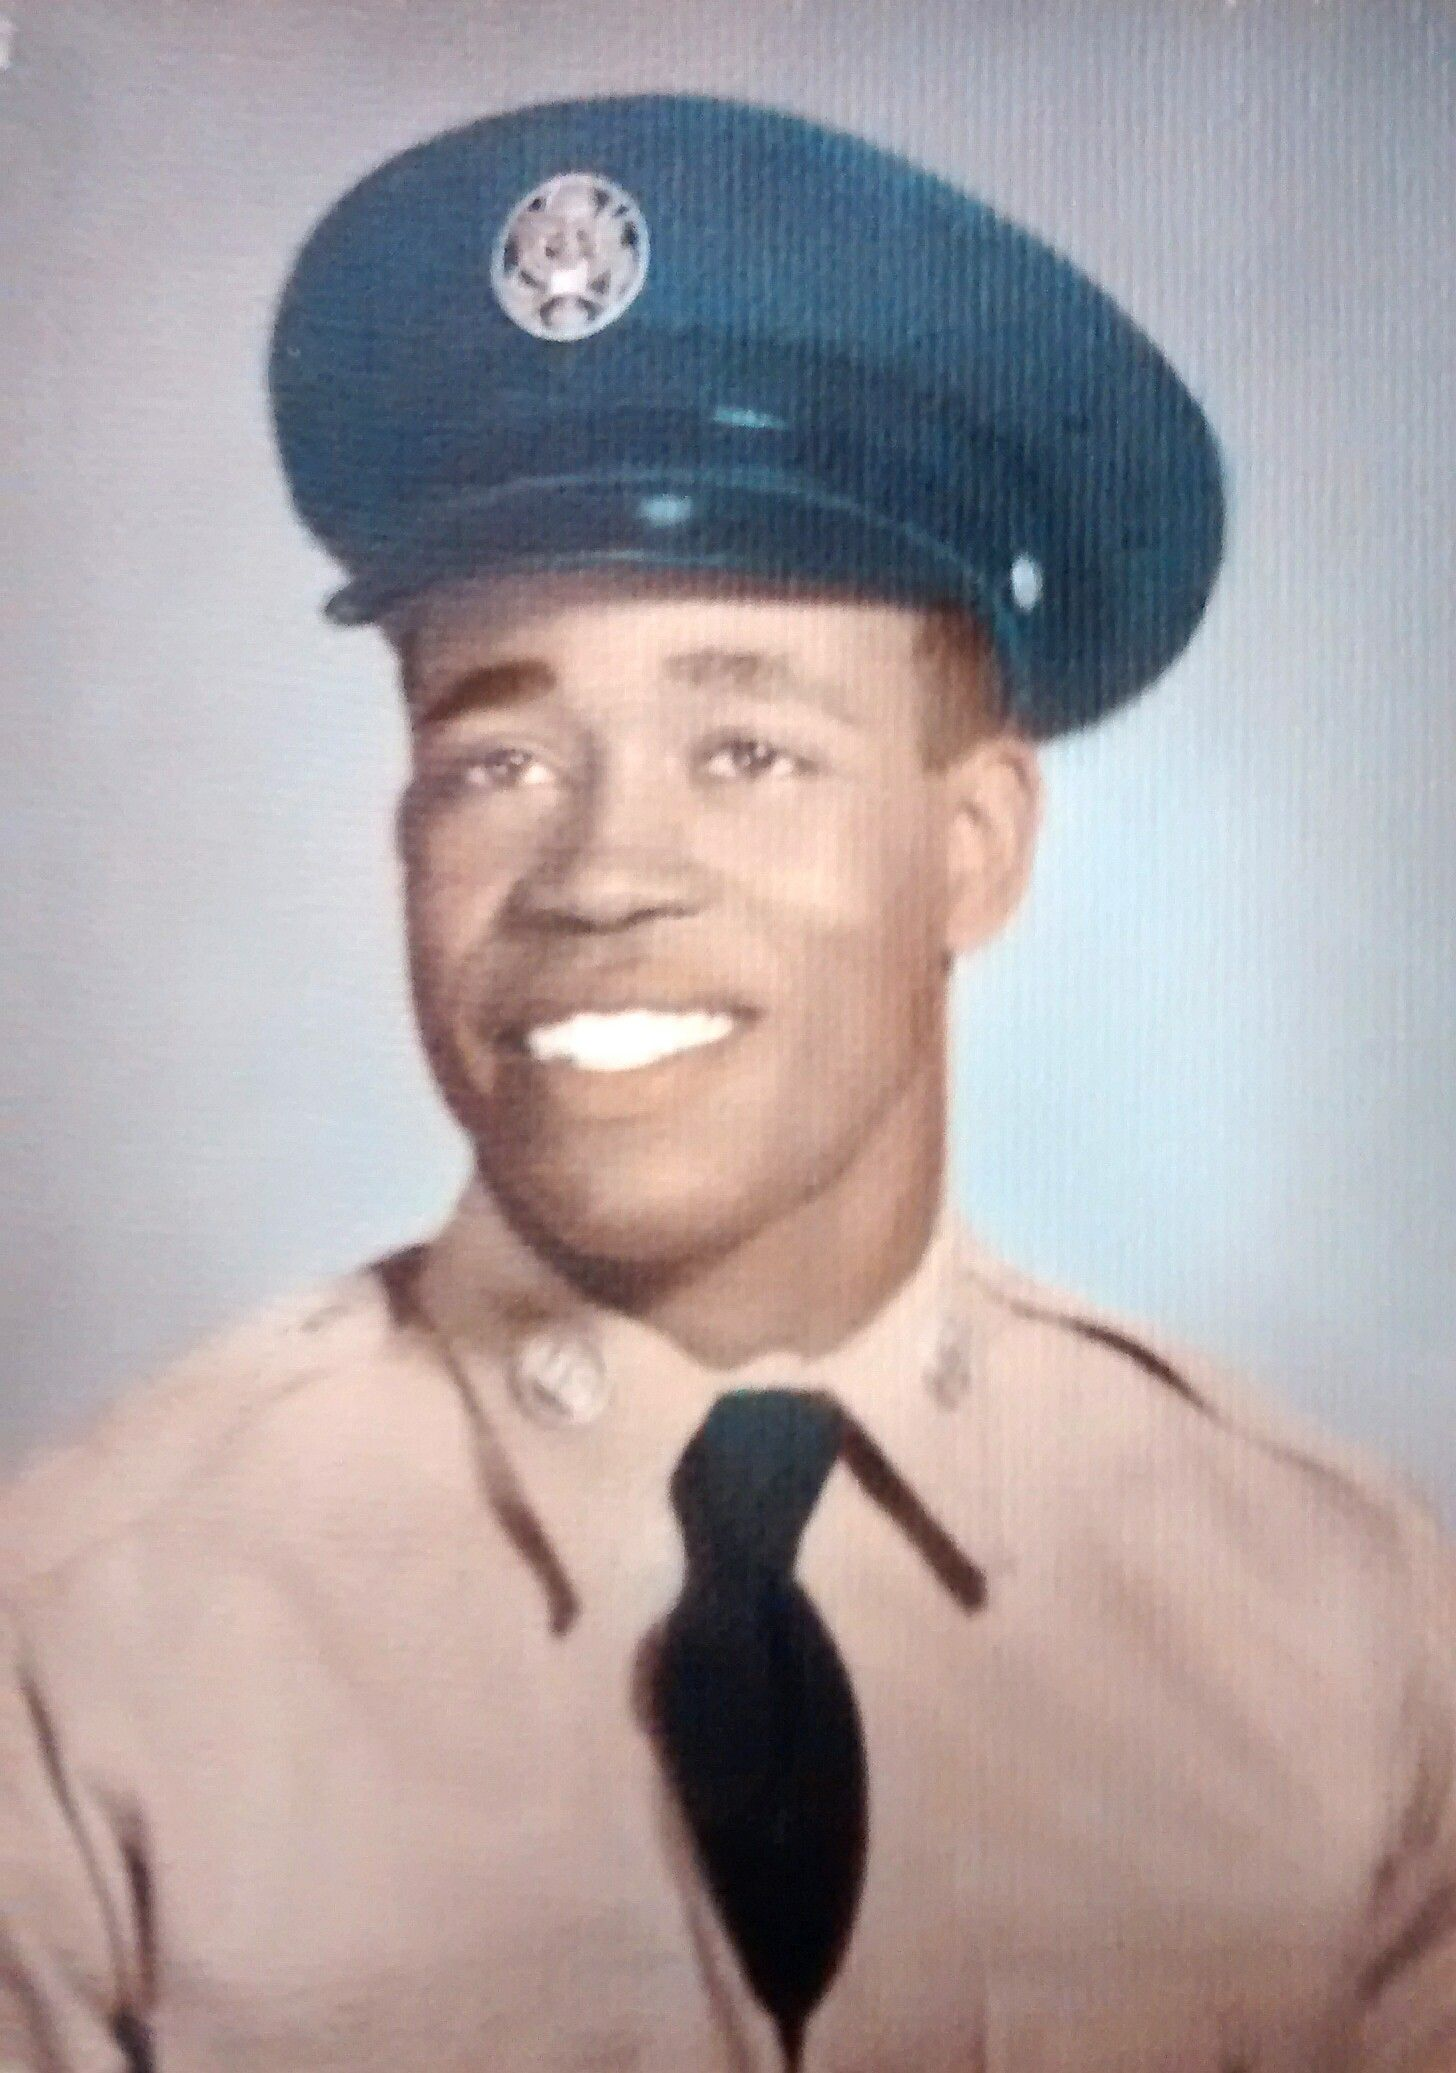 Air Force Pilot Julius Regular circa 1950s. Image supplied by family.